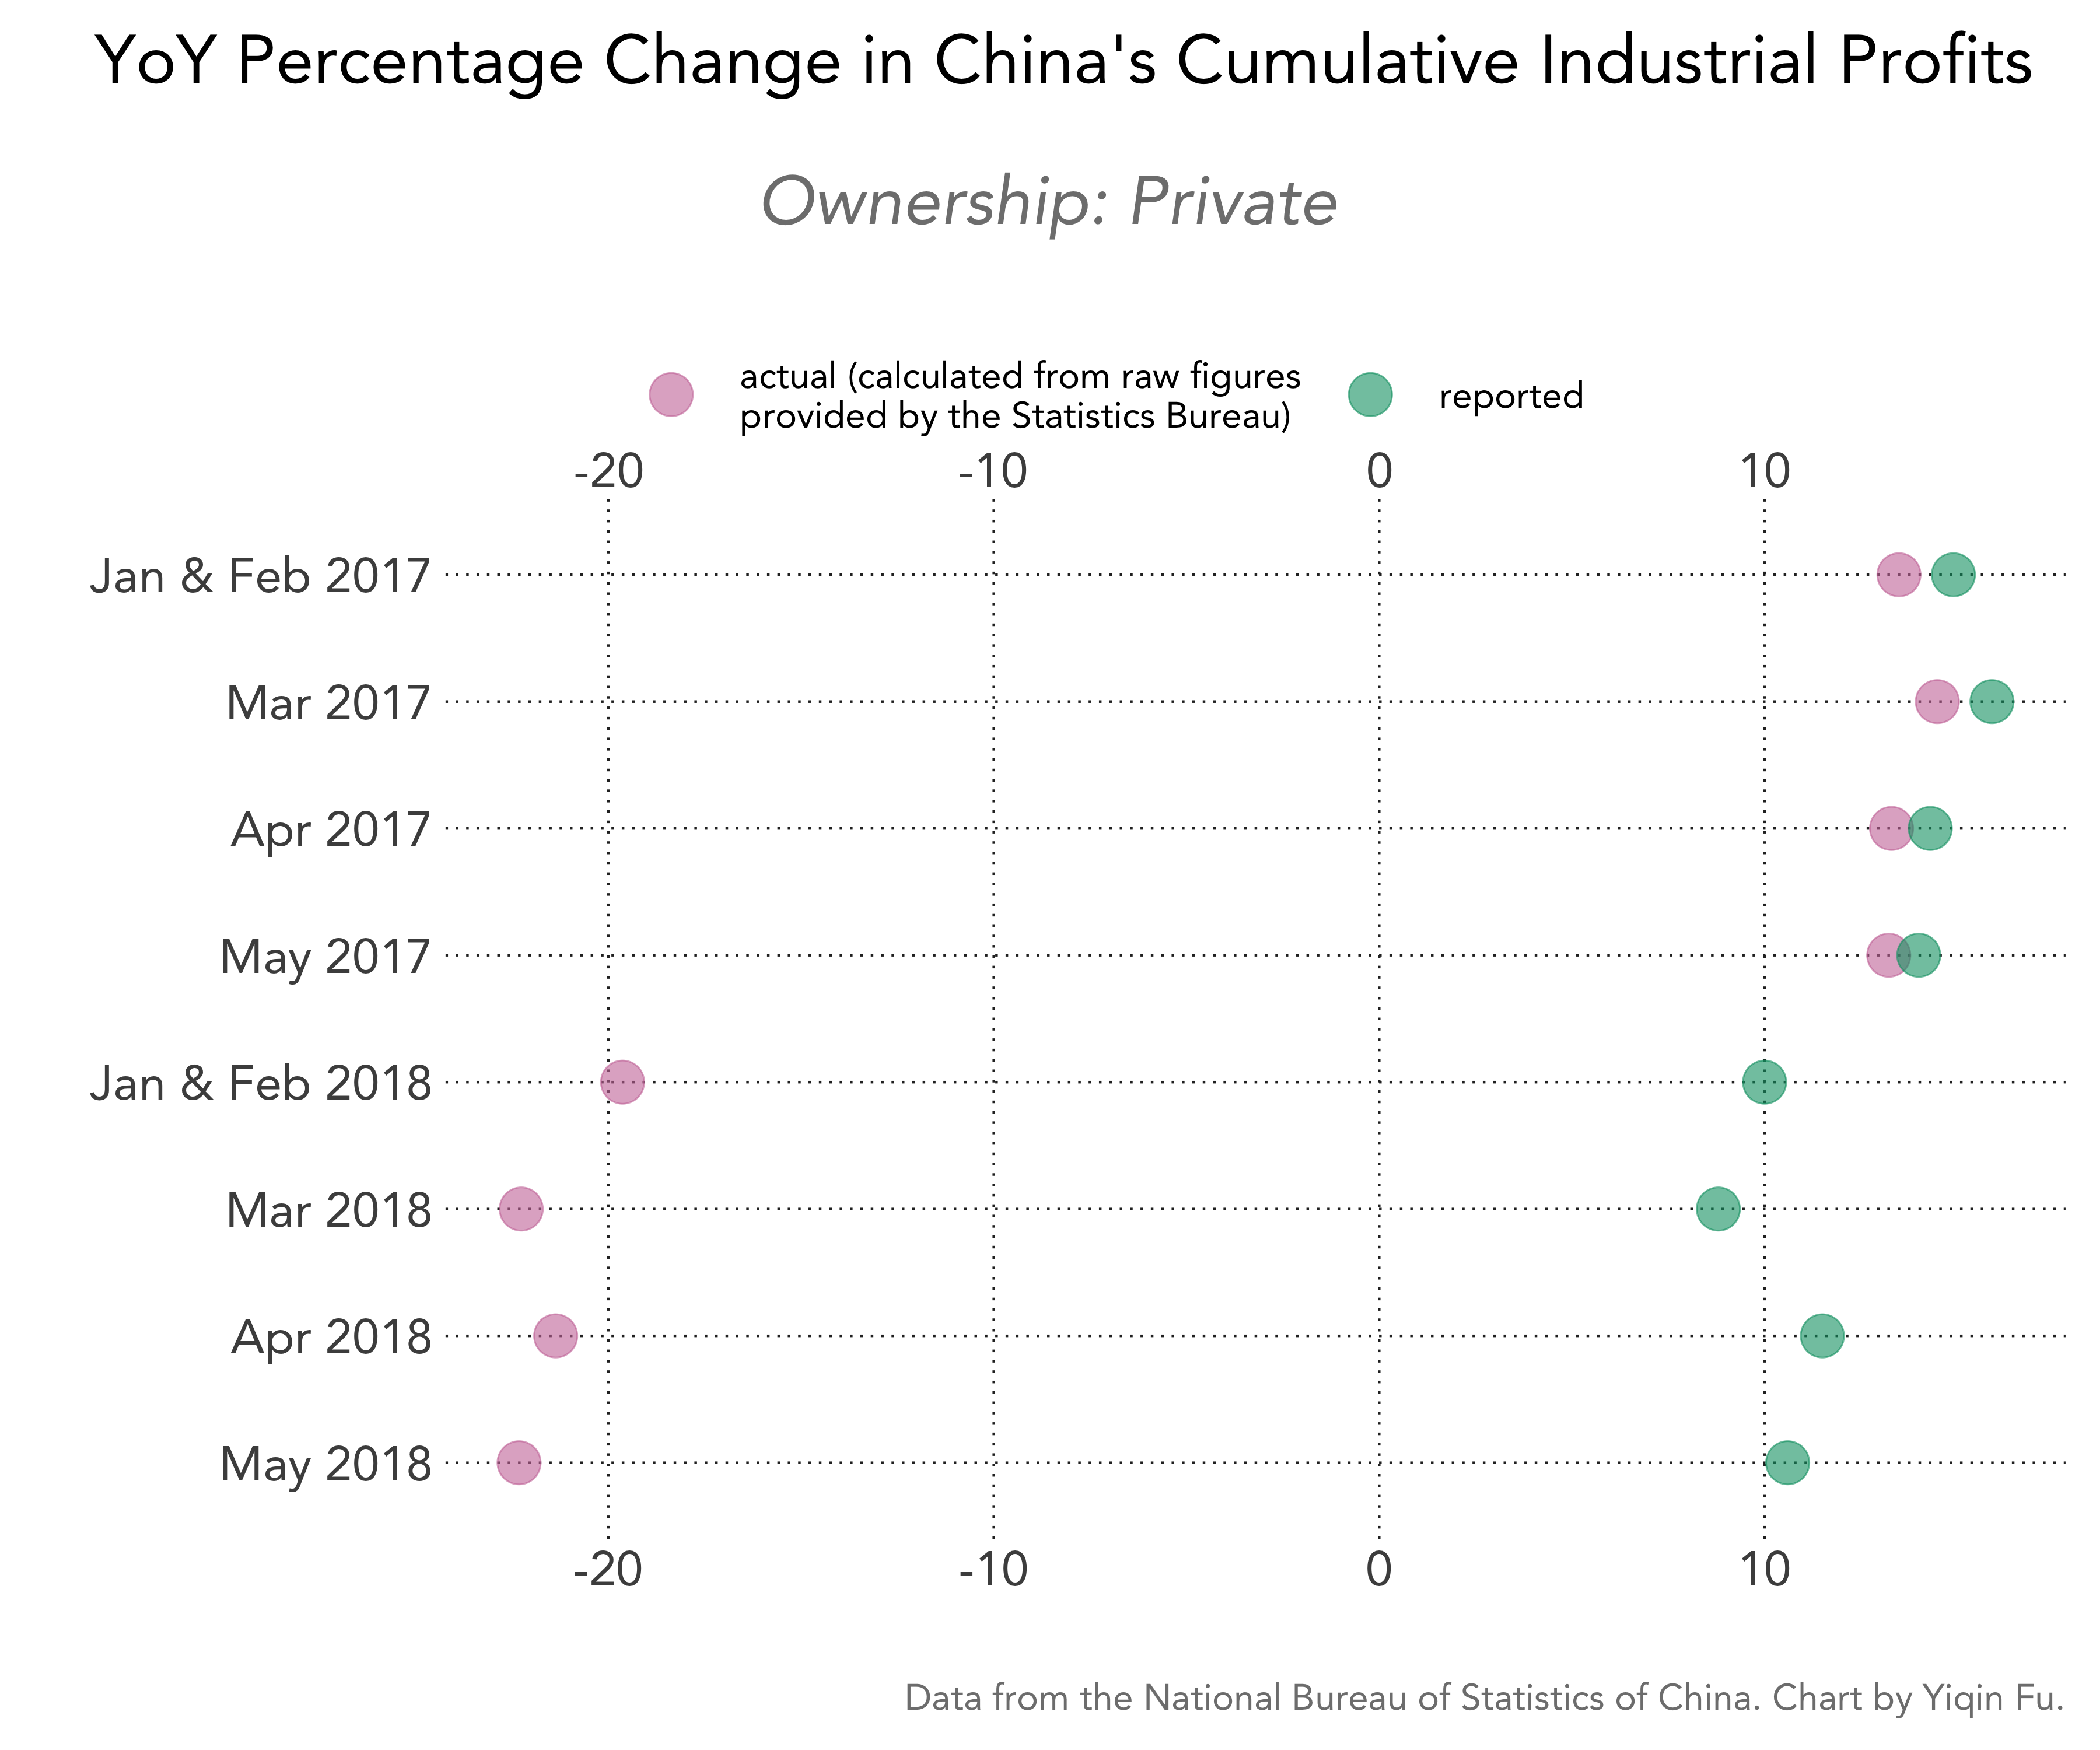 china-cumulative-industrial-profits-pct-change-actual-vs-reported-private